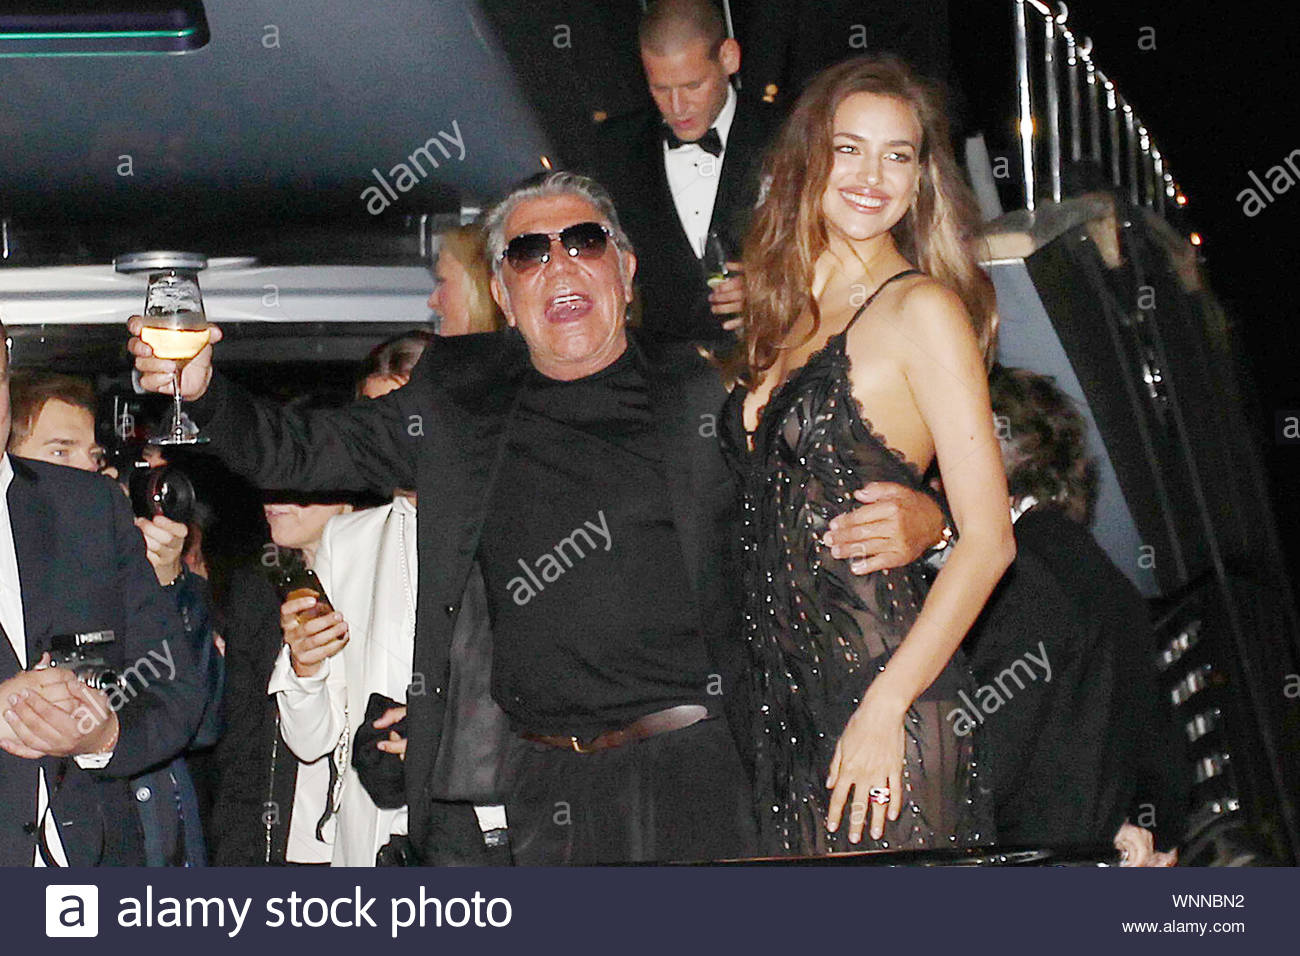 Cannes, France - Claudia Galanti and Roberto Cavalli at Roberto Cavalli's annual yacht party at Cannes Harbor during the 67th Annual Cannes Film Festival in Cannes, France. AKM-GSI May 21, 2014 Stock Photo